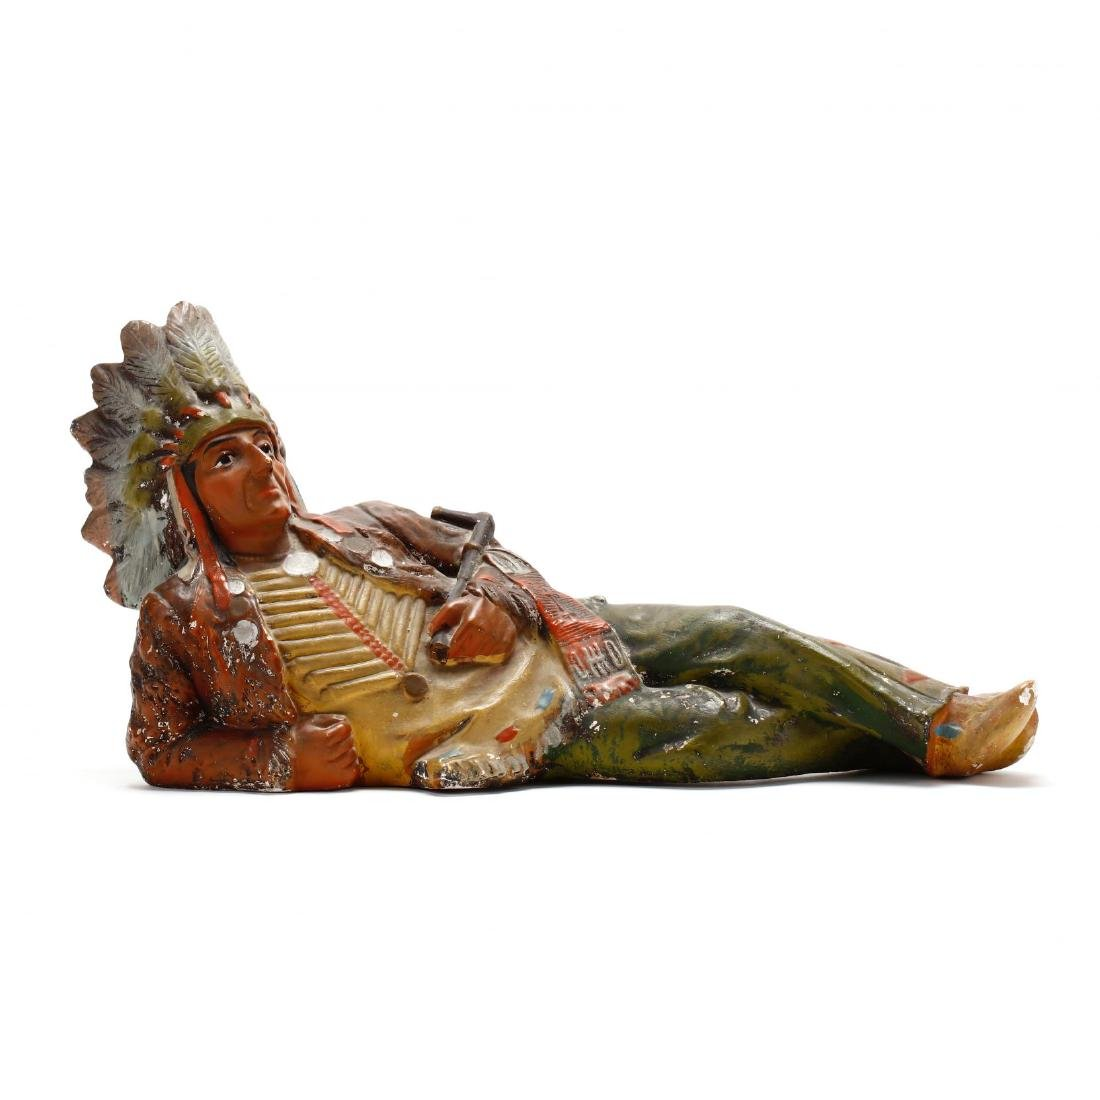 Vintage Chalkware Cigar Store Indian